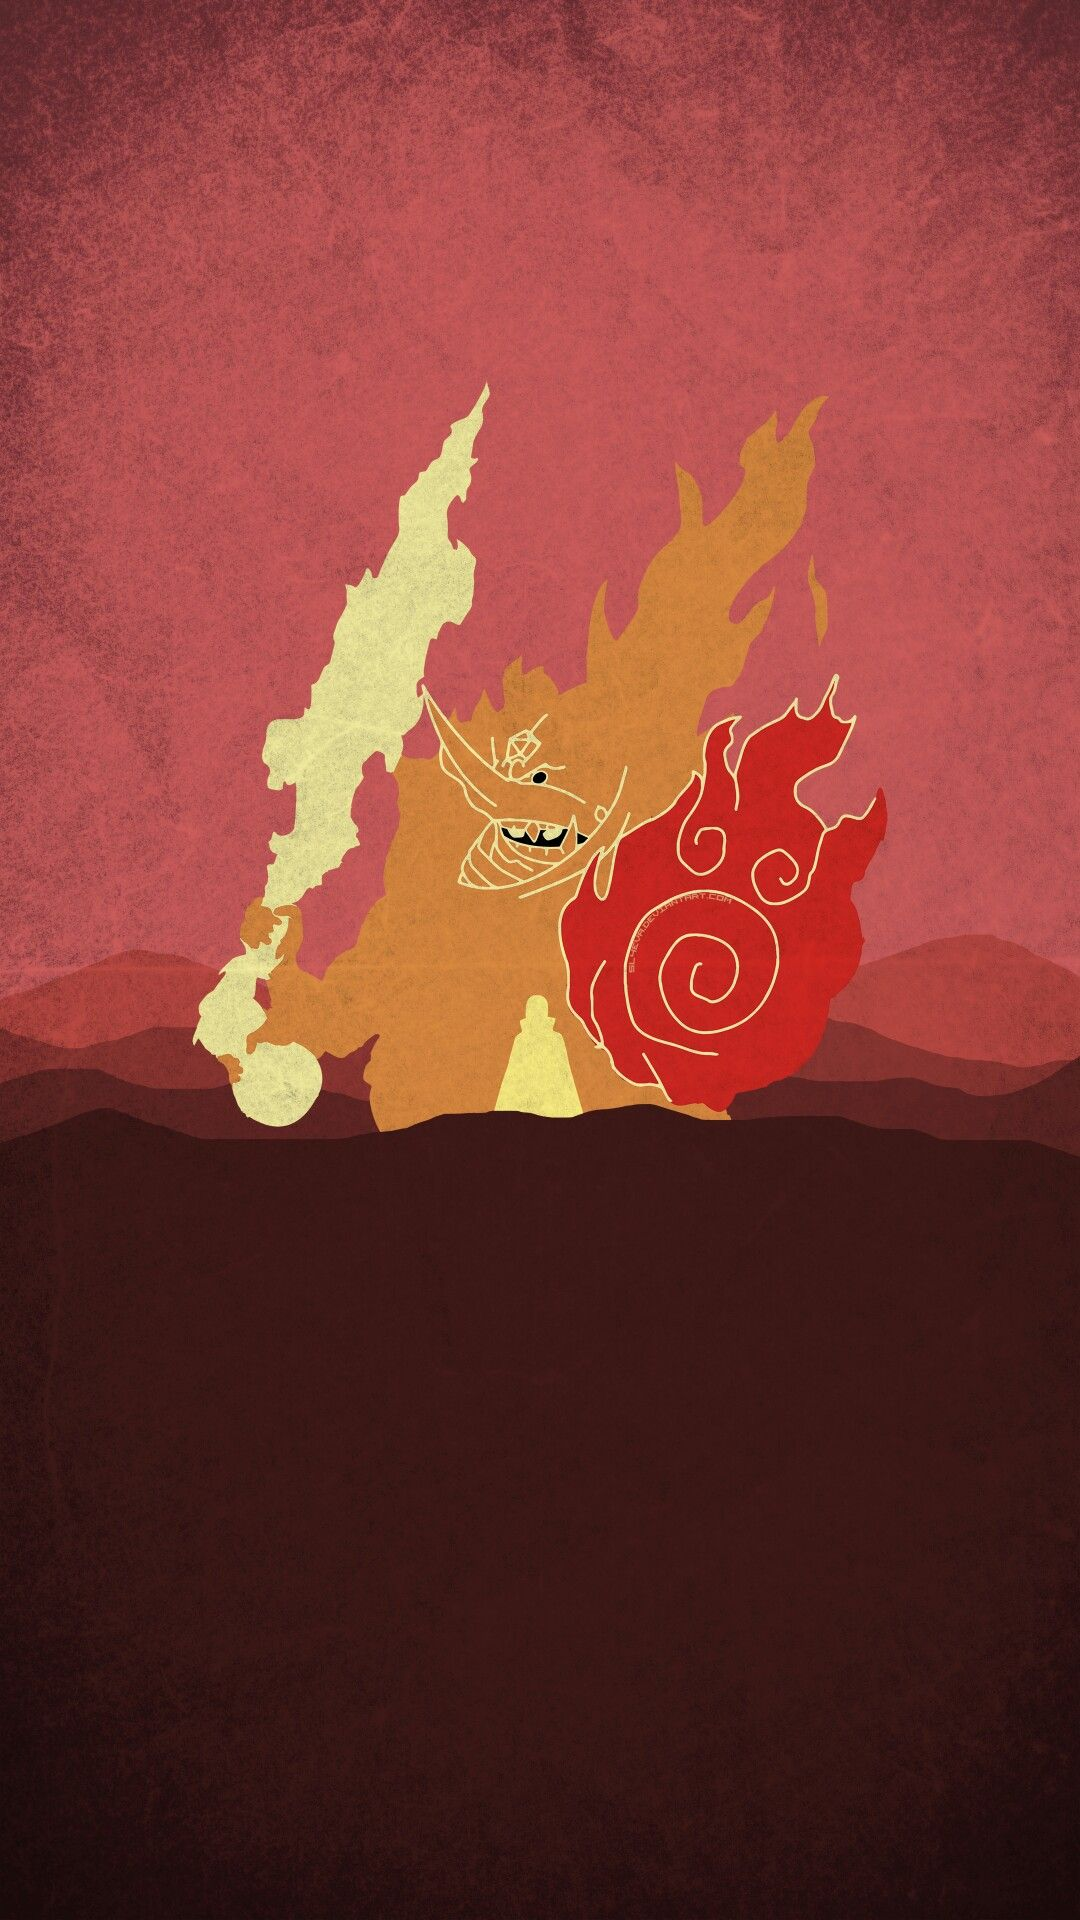 naruto minimalist mobile wallpaper | wallpaper | pinterest | mobile